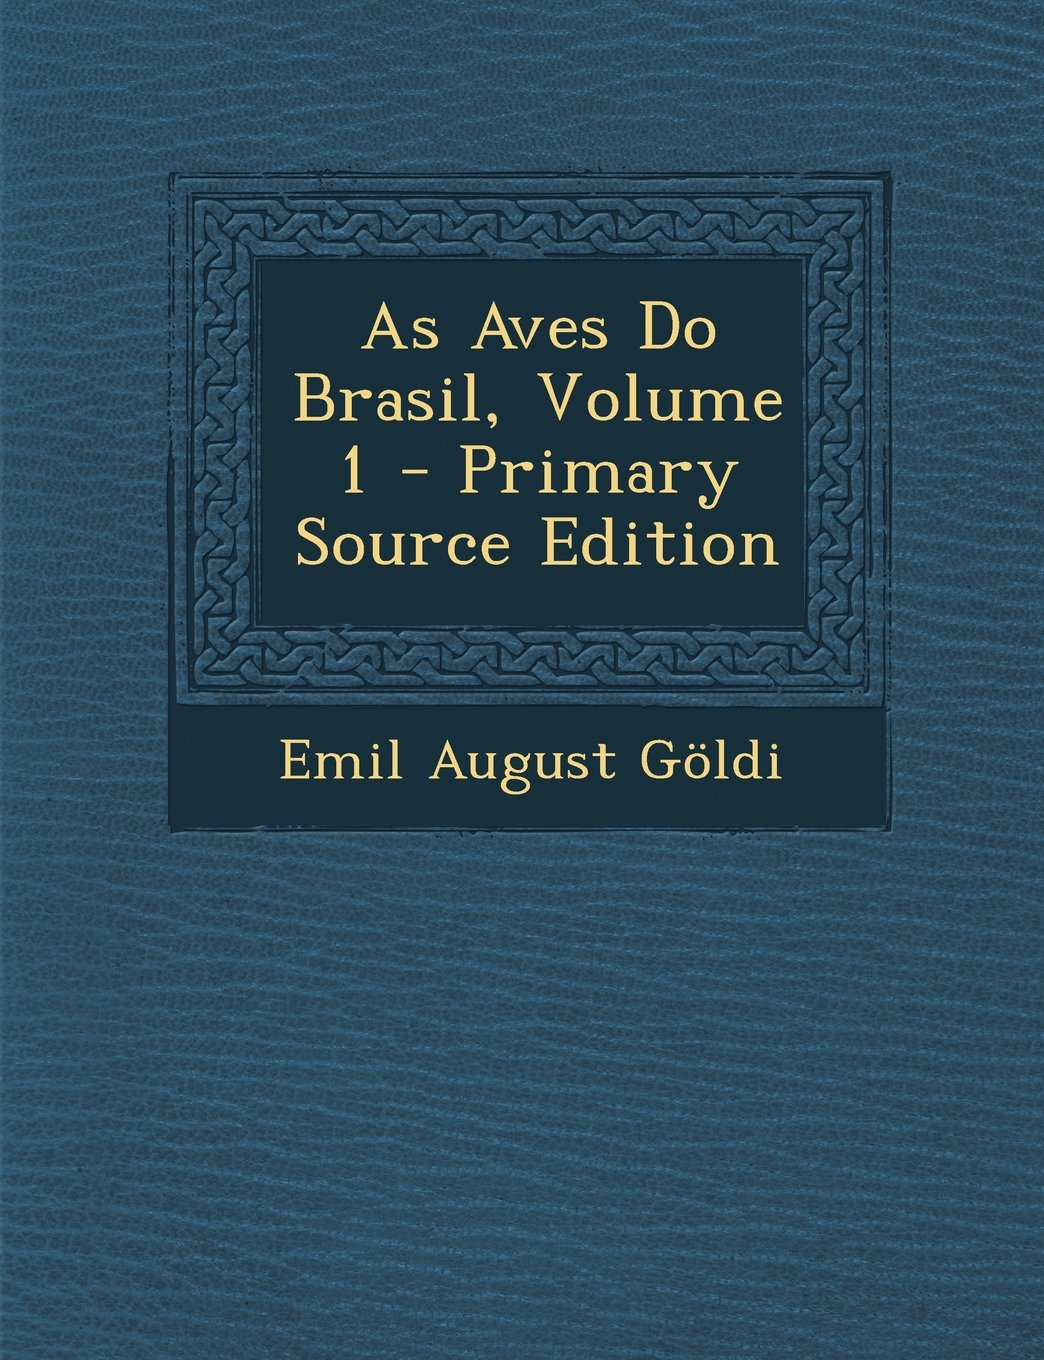 As Aves Do Brasil, Volume 1 - Primary Source Edition (Portuguese Edition) PDF